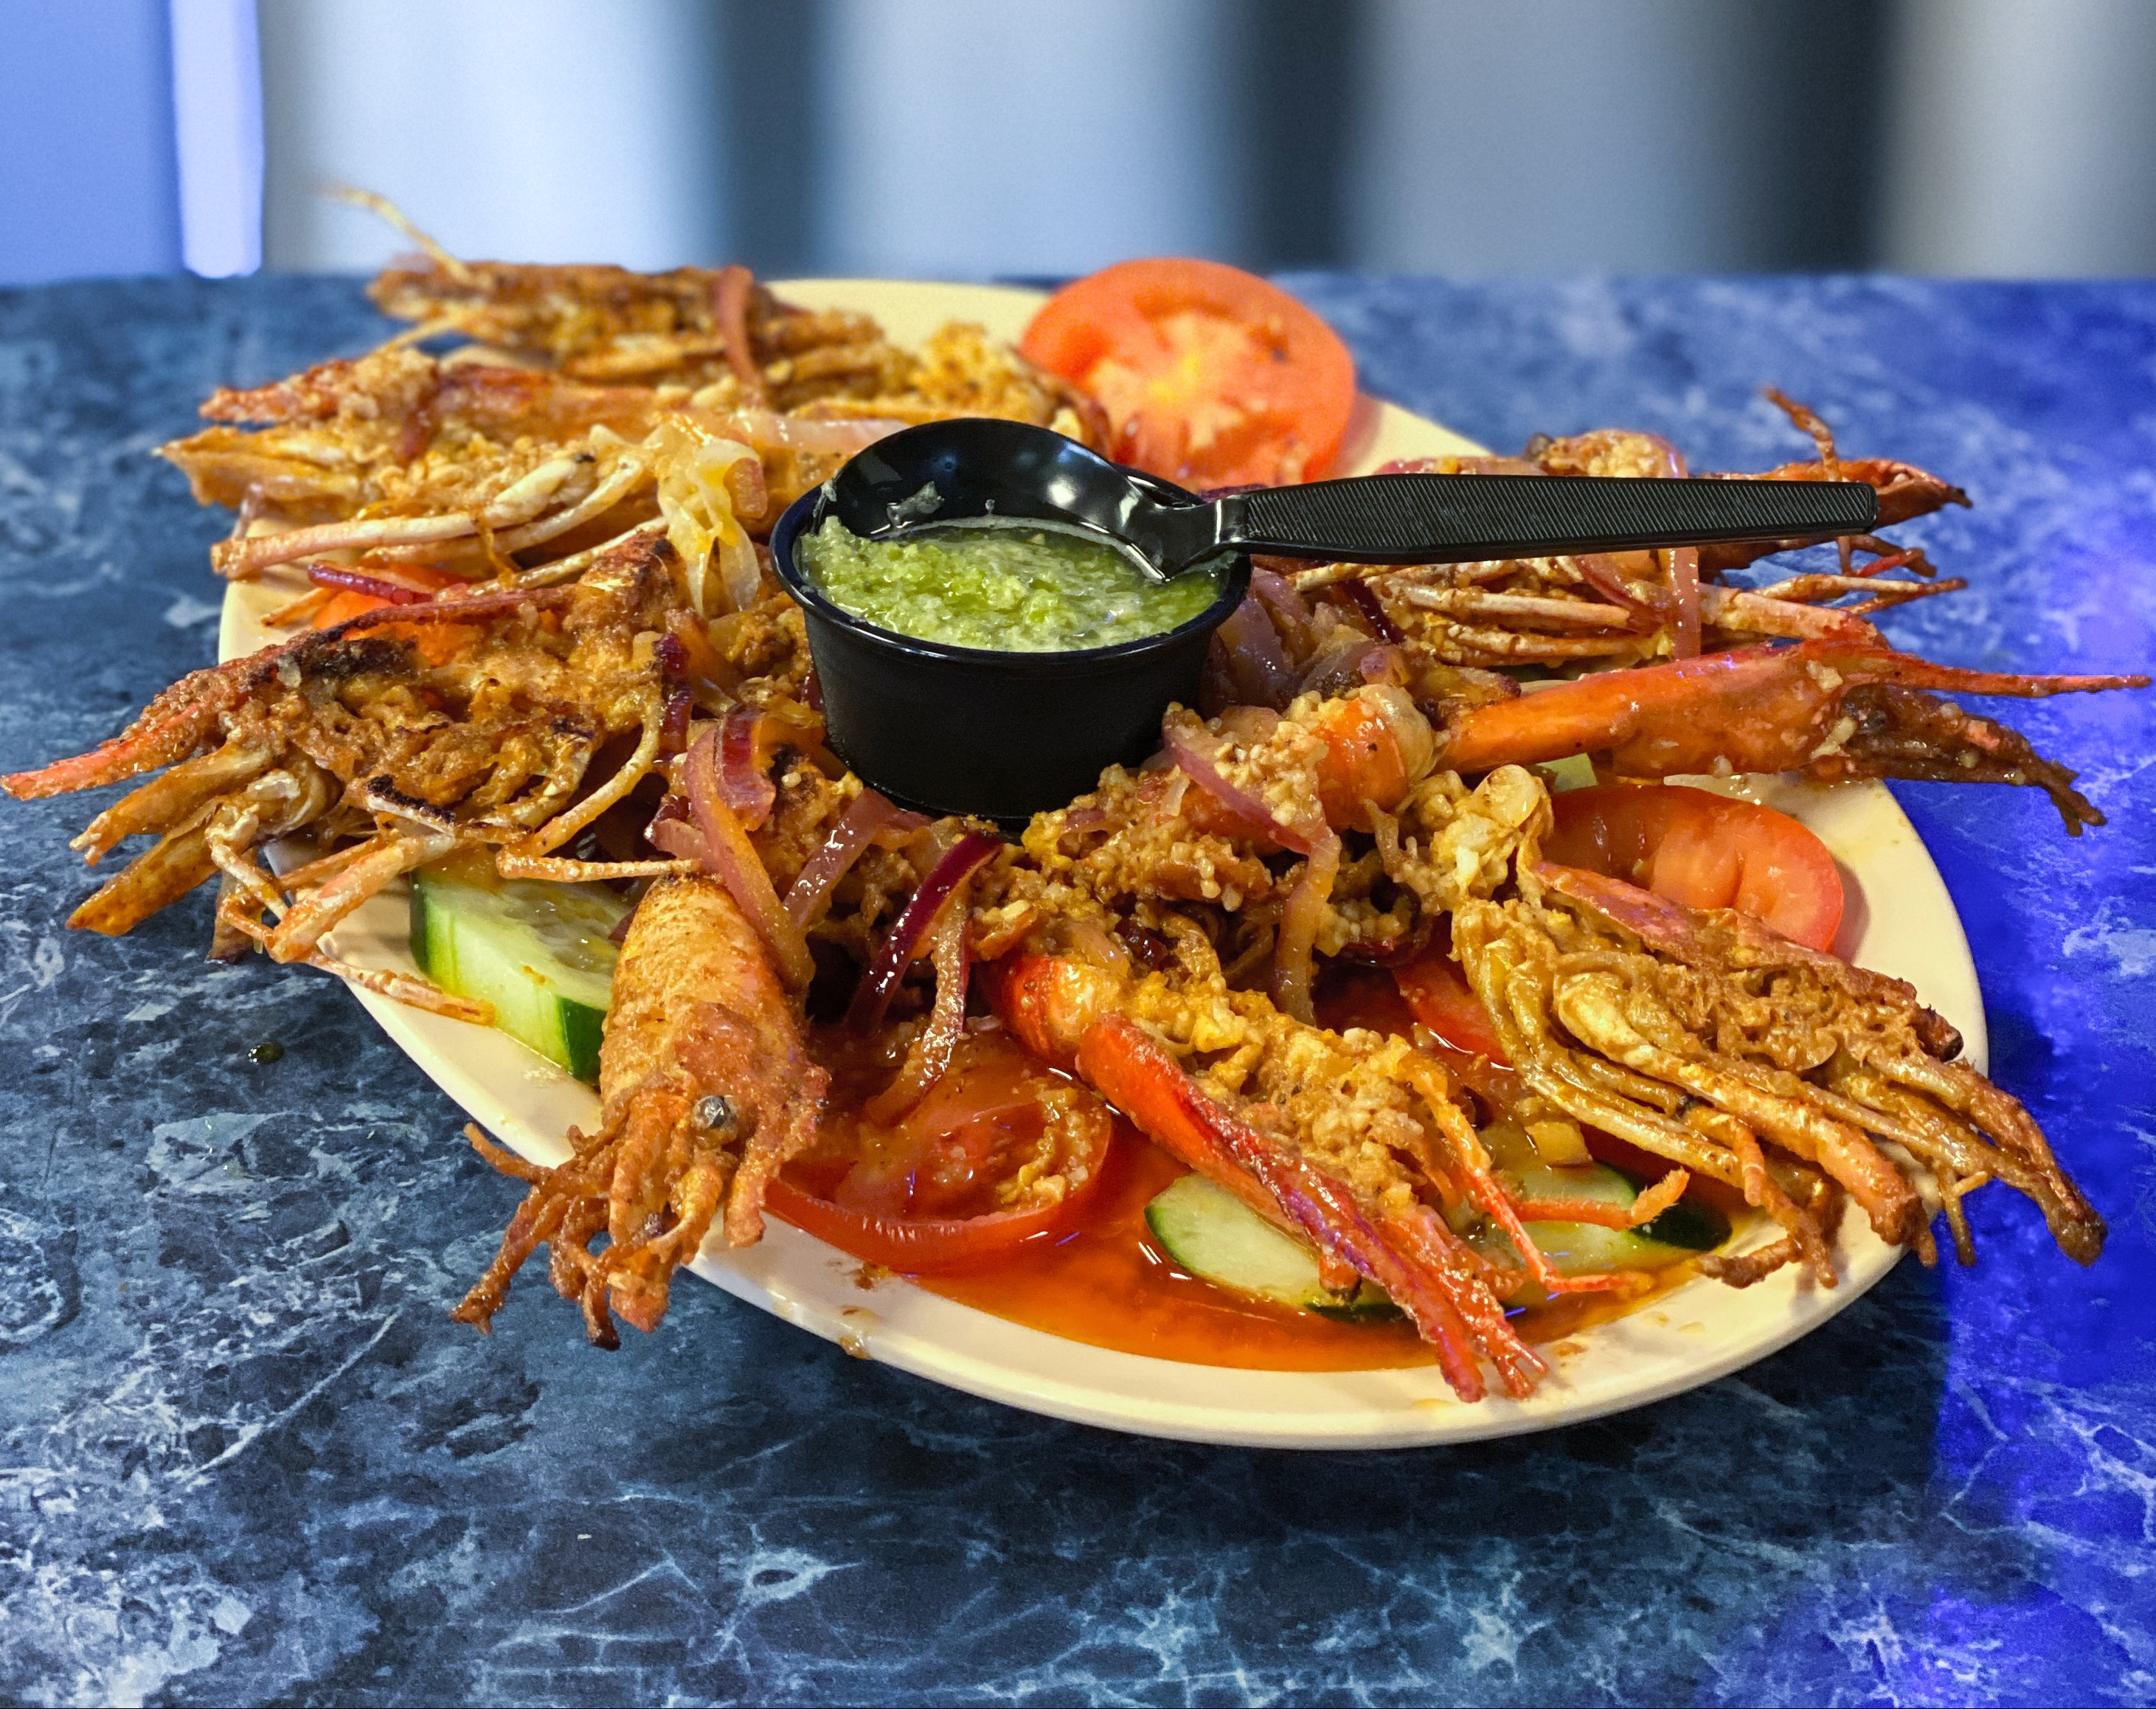 Langostino Plate at Mariscos La Palma in Moreno Valley